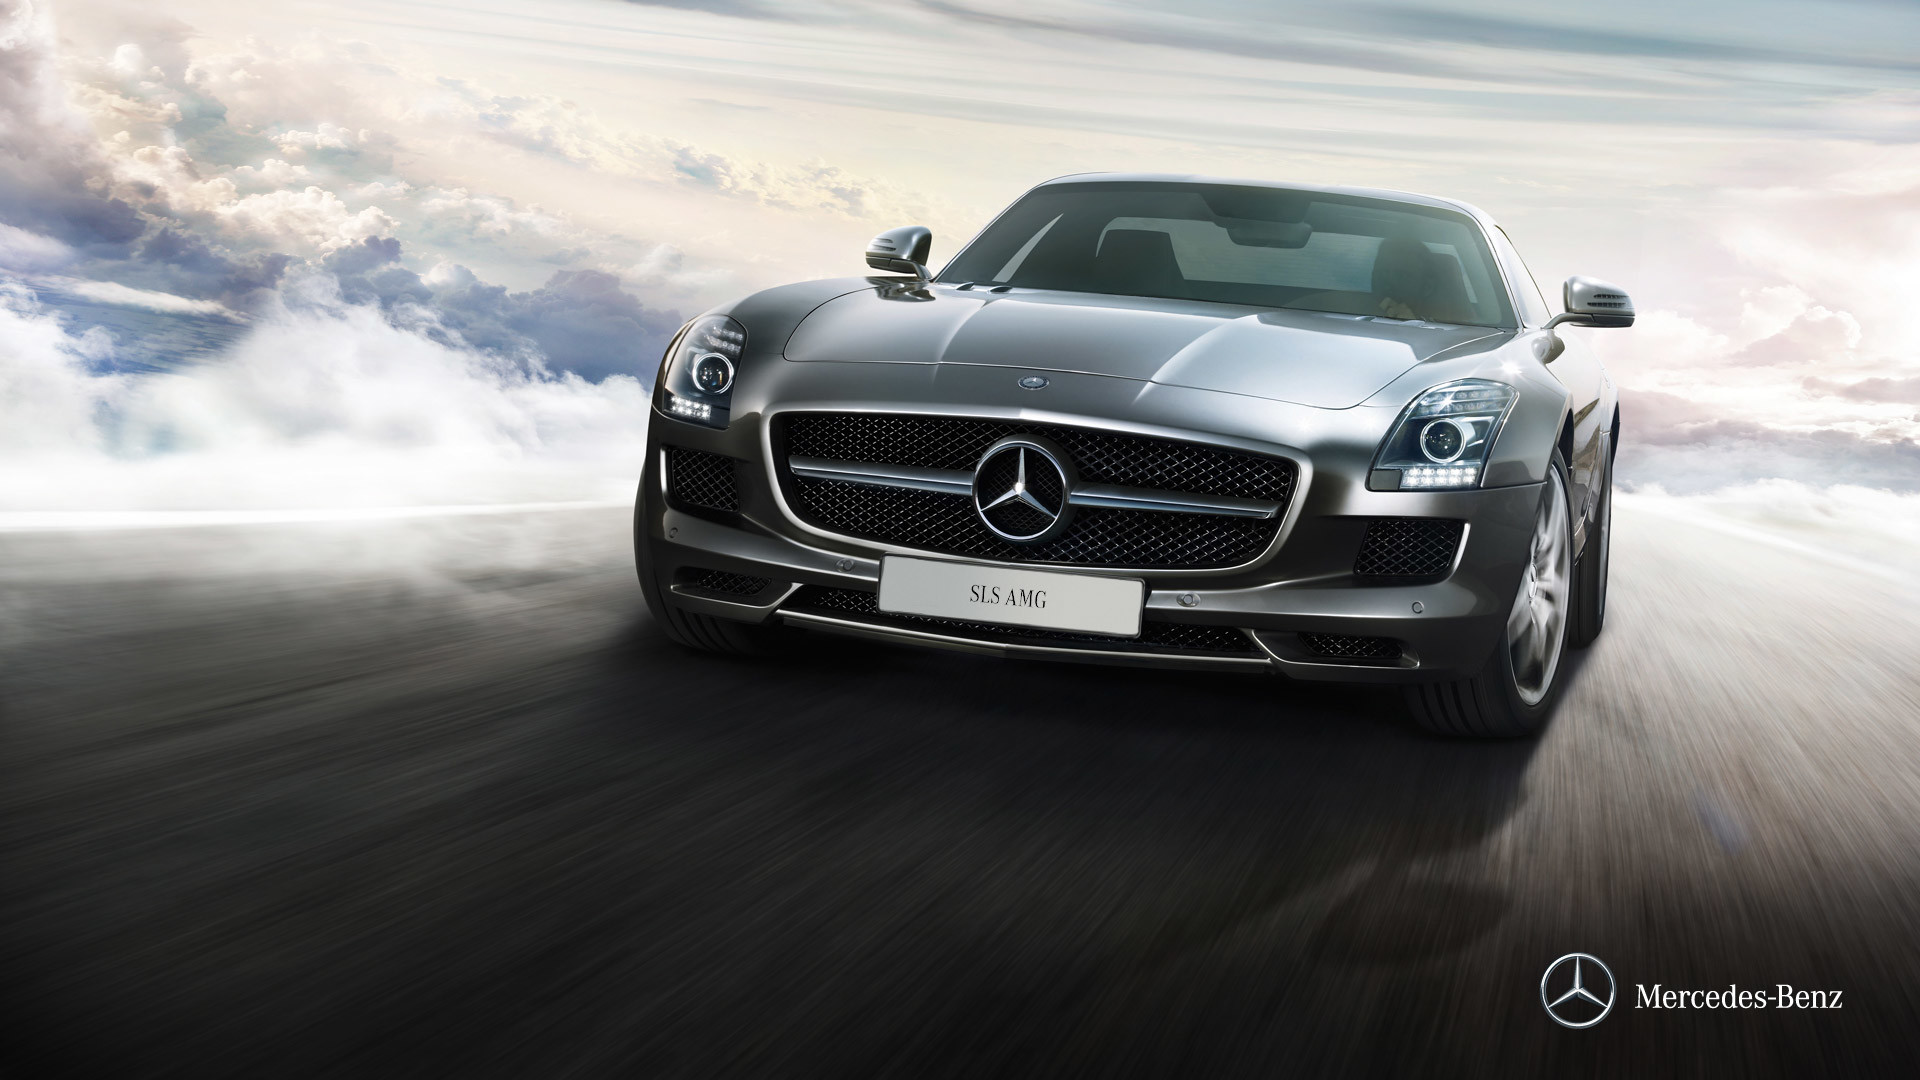 1920x1080 ... Mercedes Sls Amg Full Hd Image 14 Mercedes Benz Sls Amg Wallpaper  617412 ...